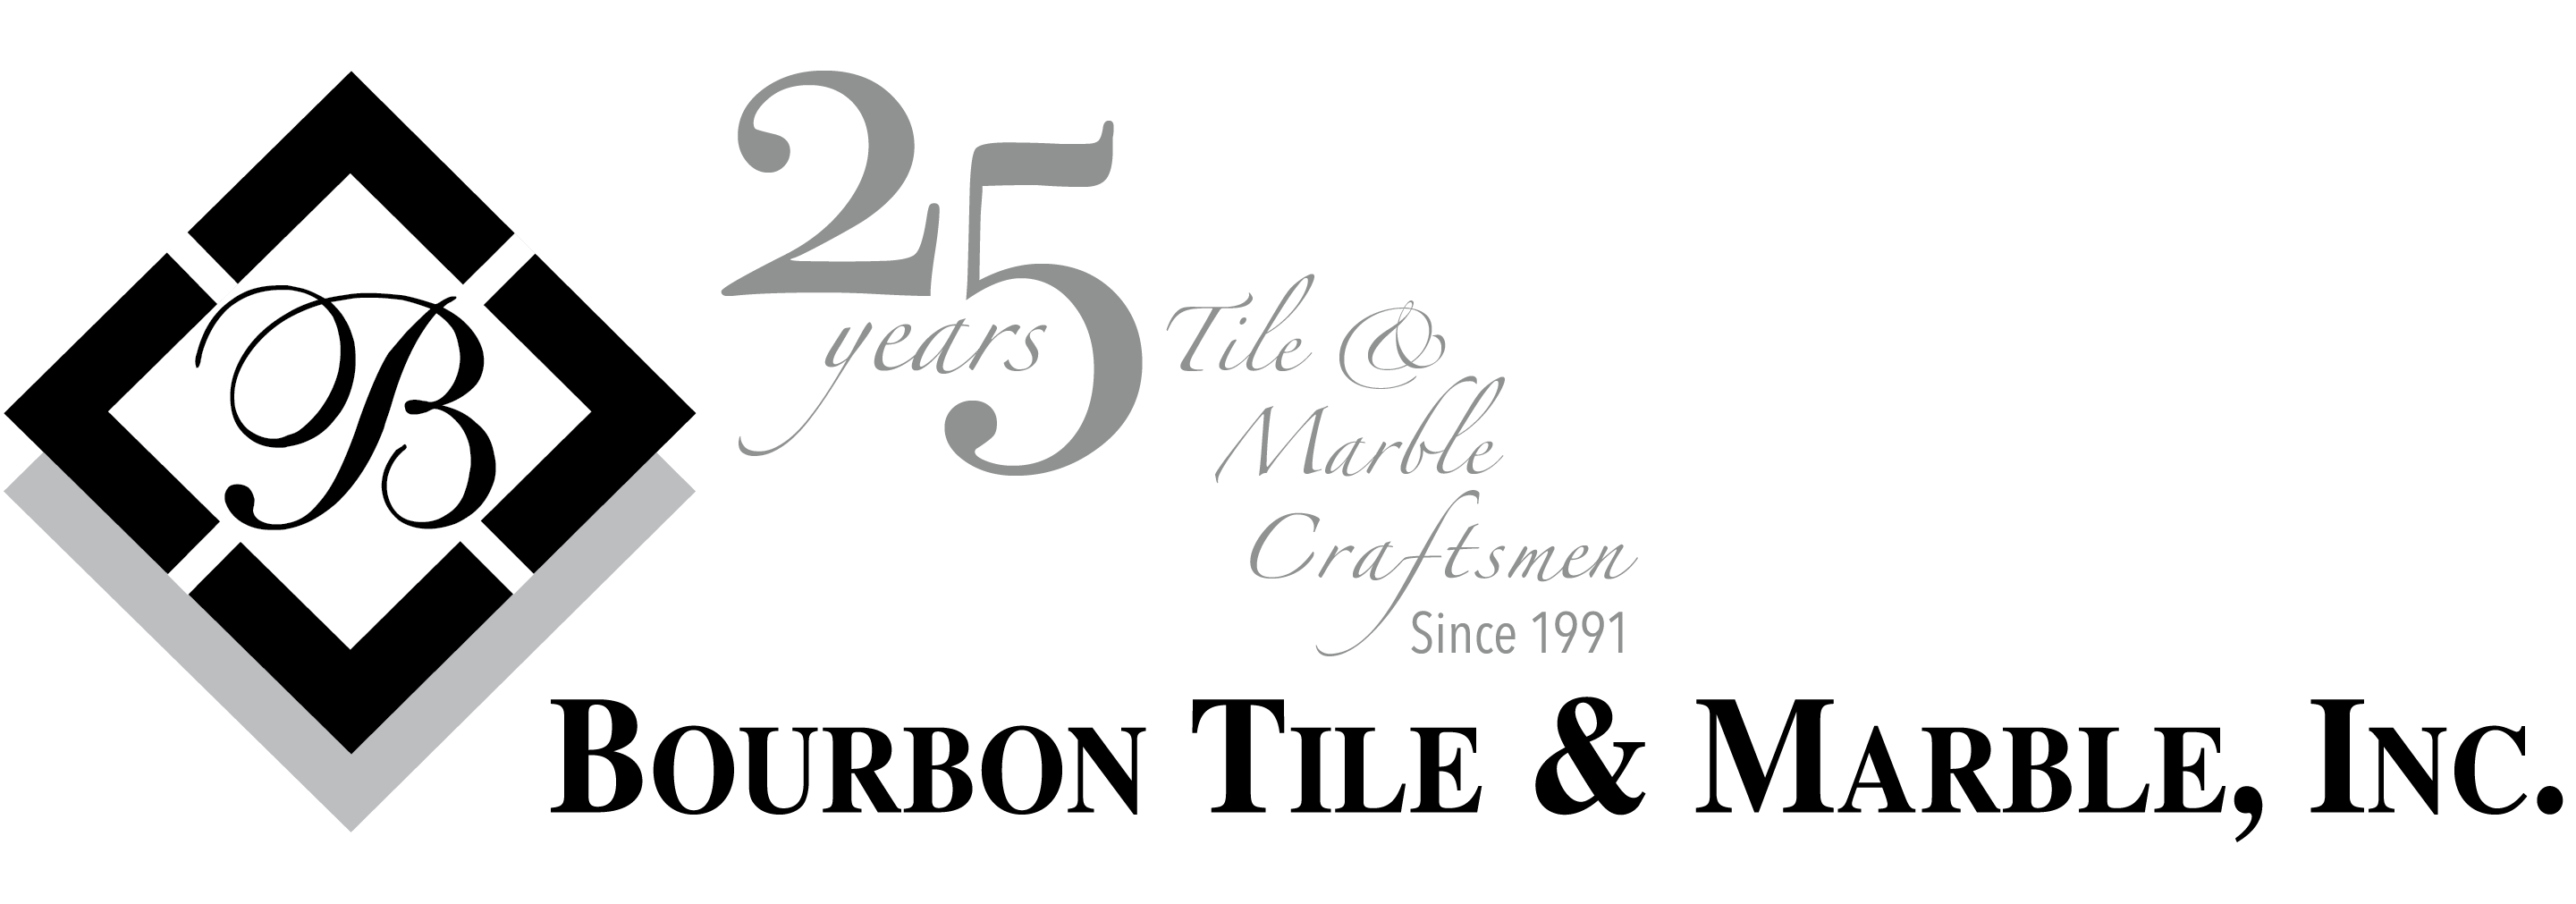 Bourbon Tile and Marble, Inc